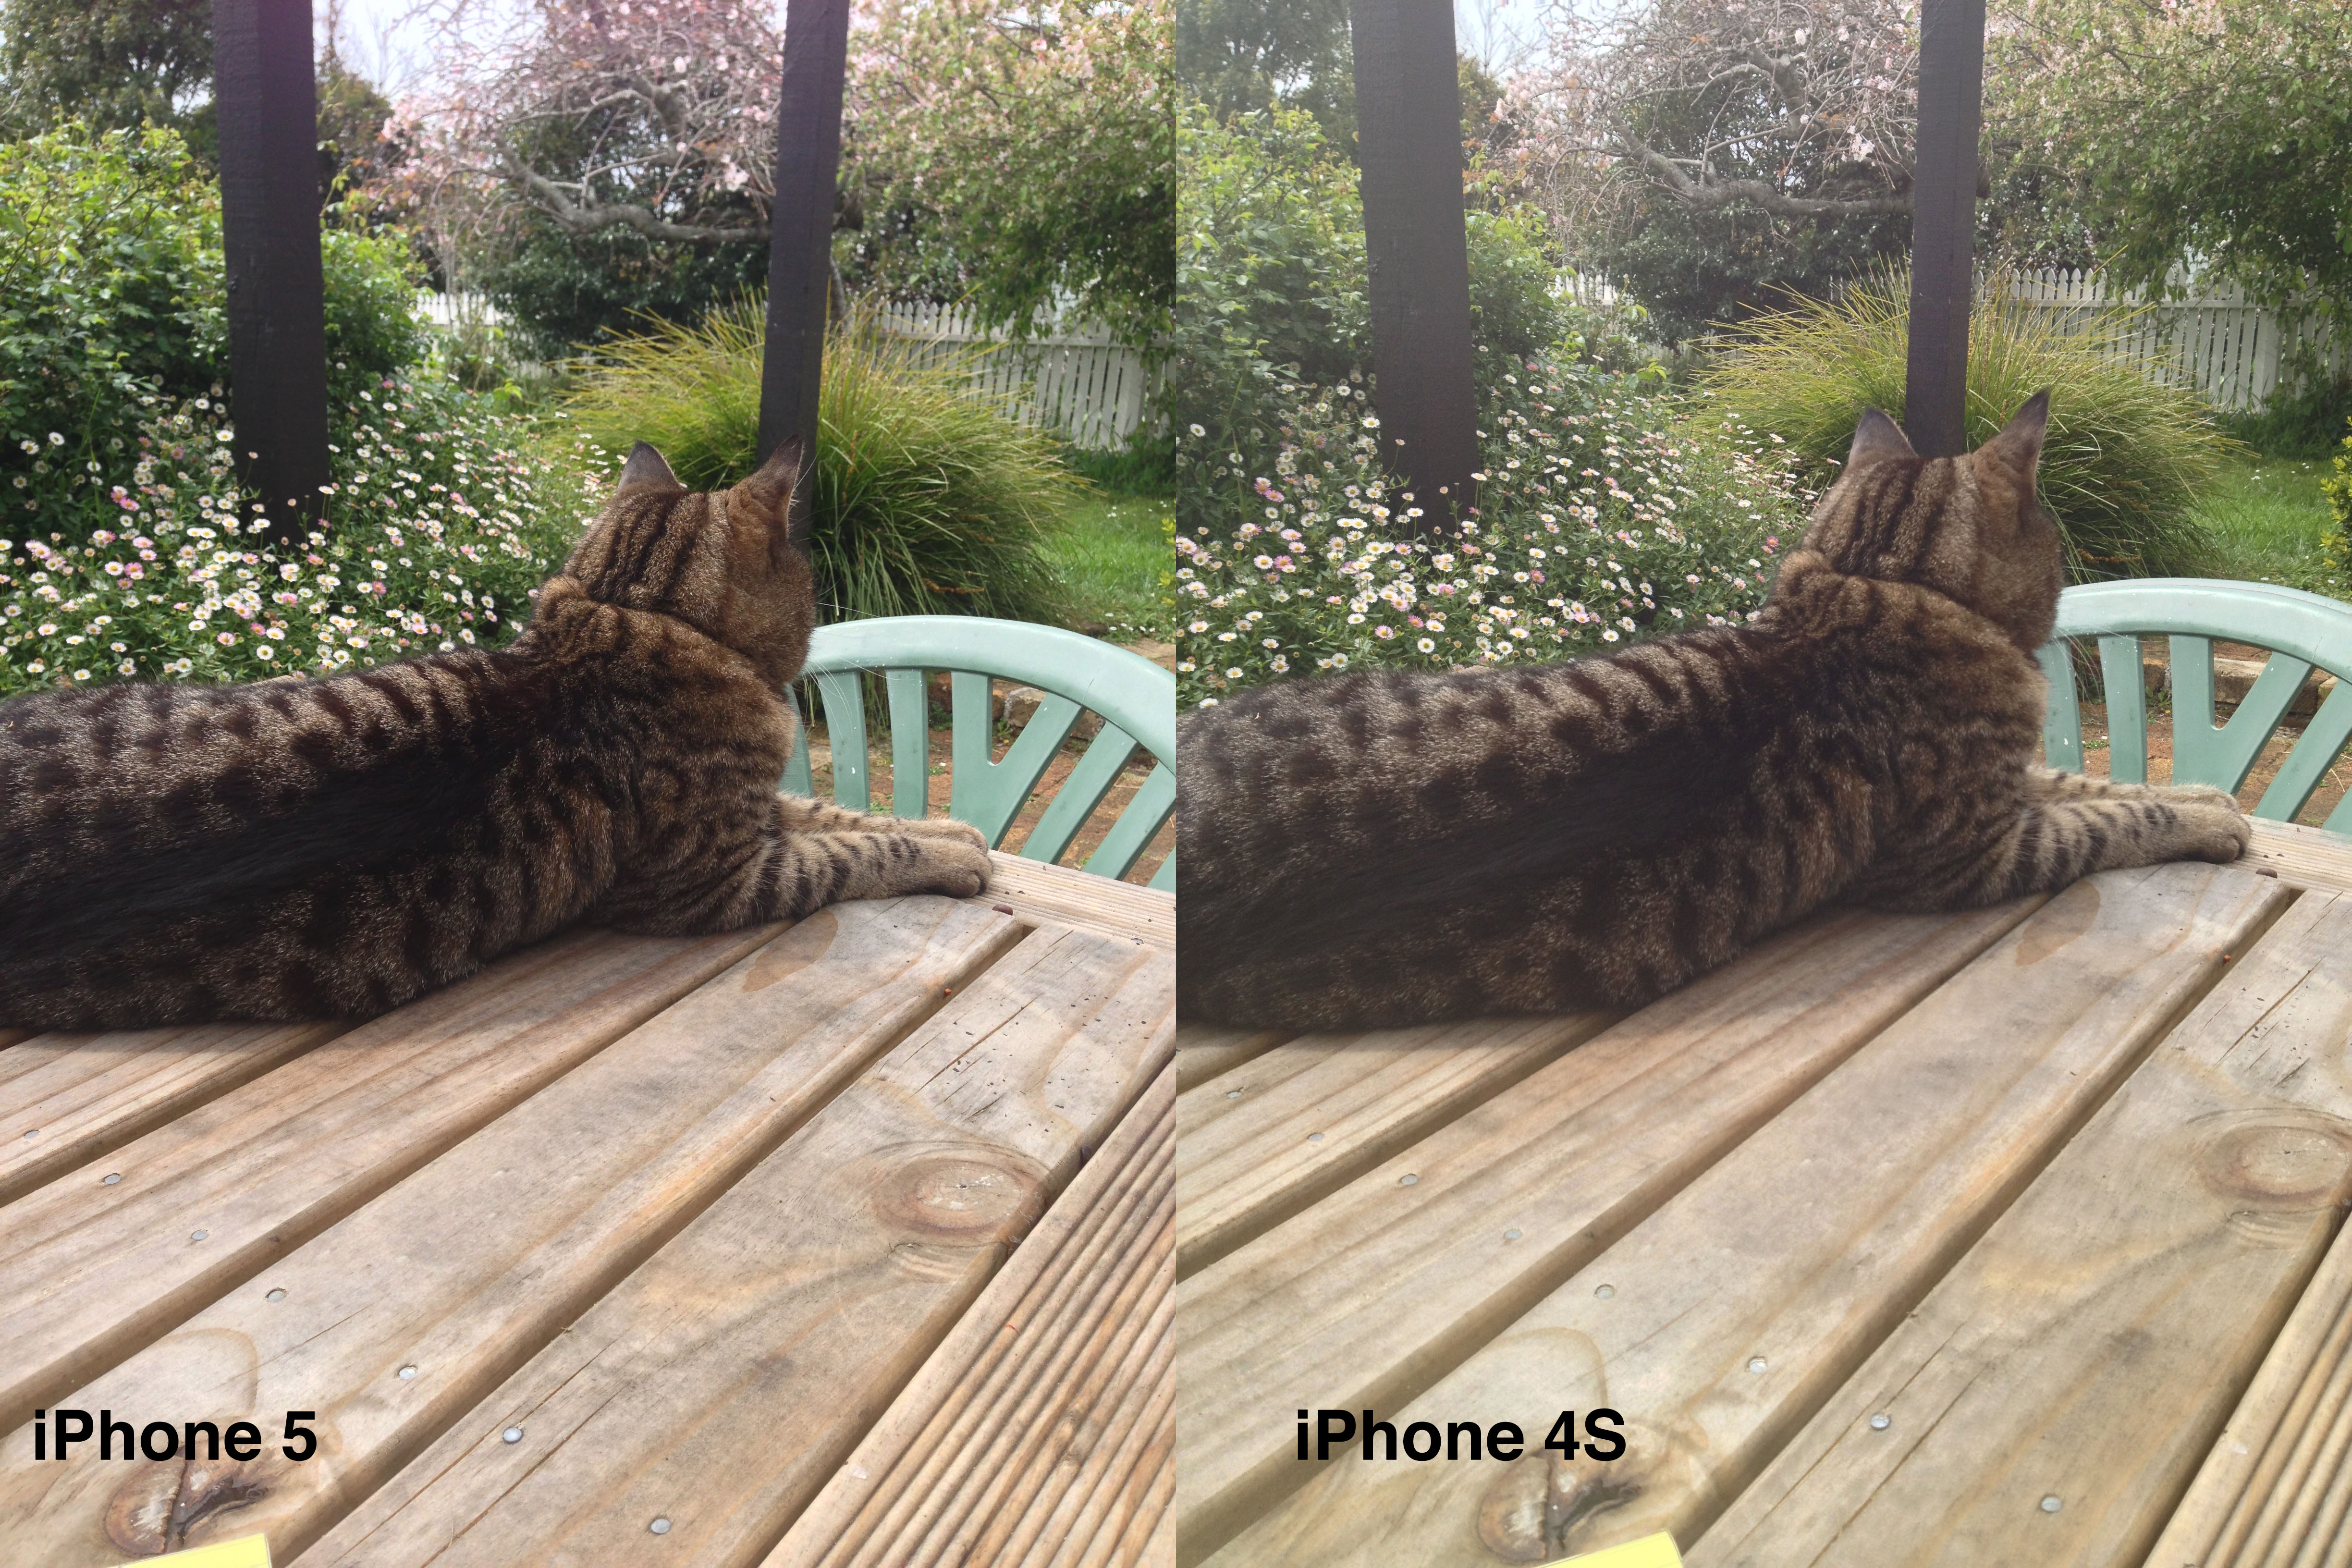 Camera Iphone 4s vs 5s The Iphone 4s's Camera